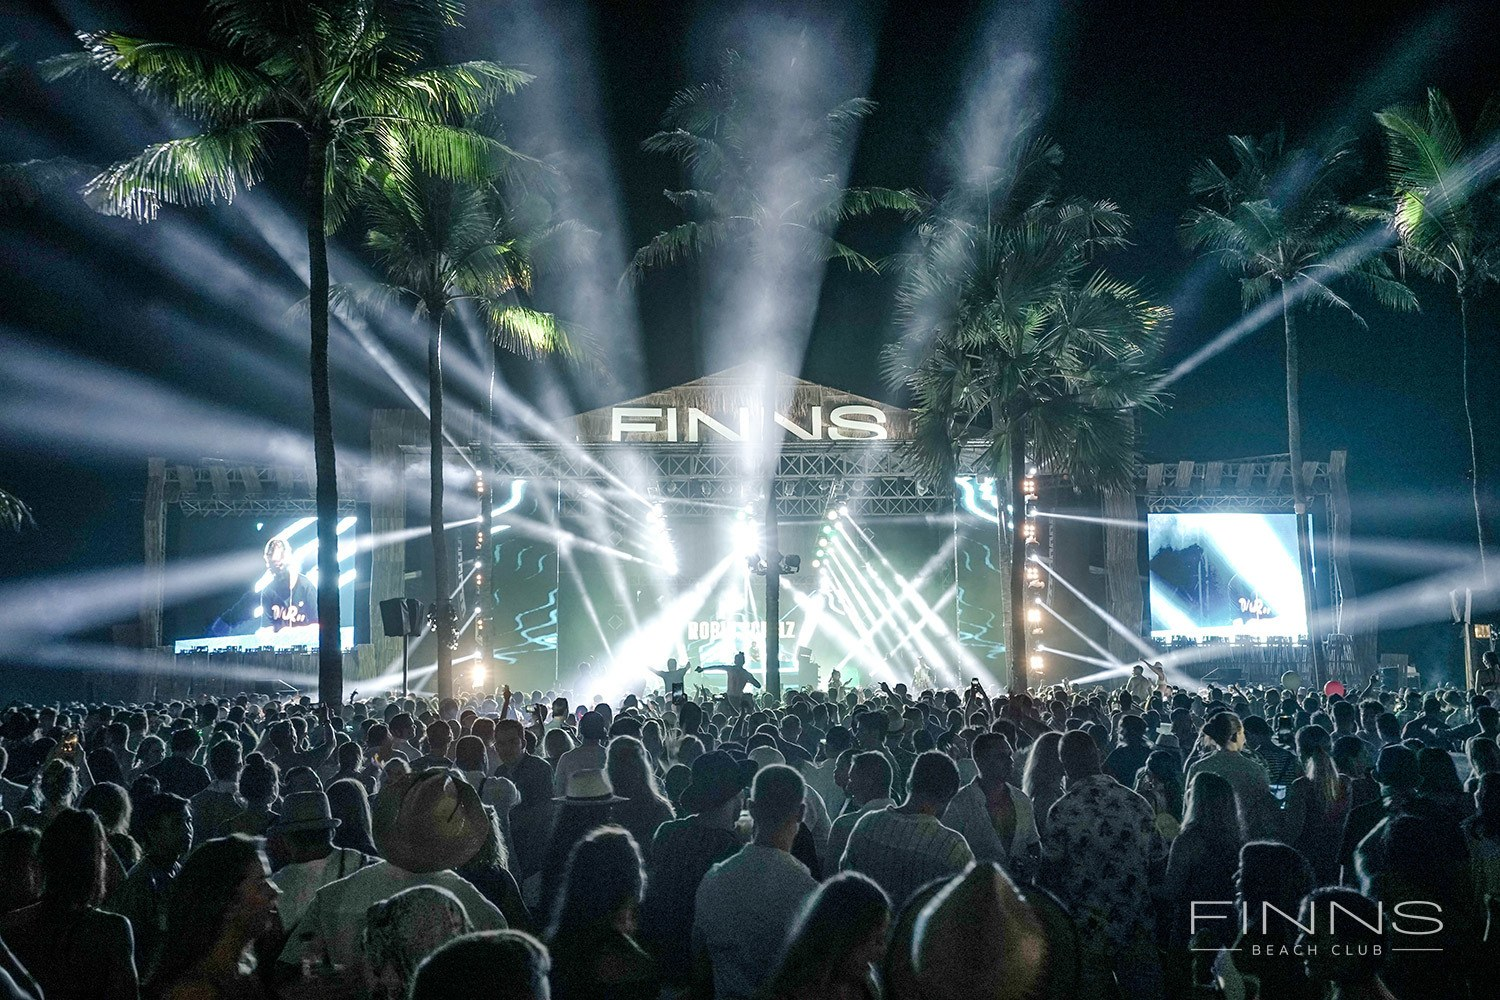 New Years Eve Music Festival Bali Indonesia